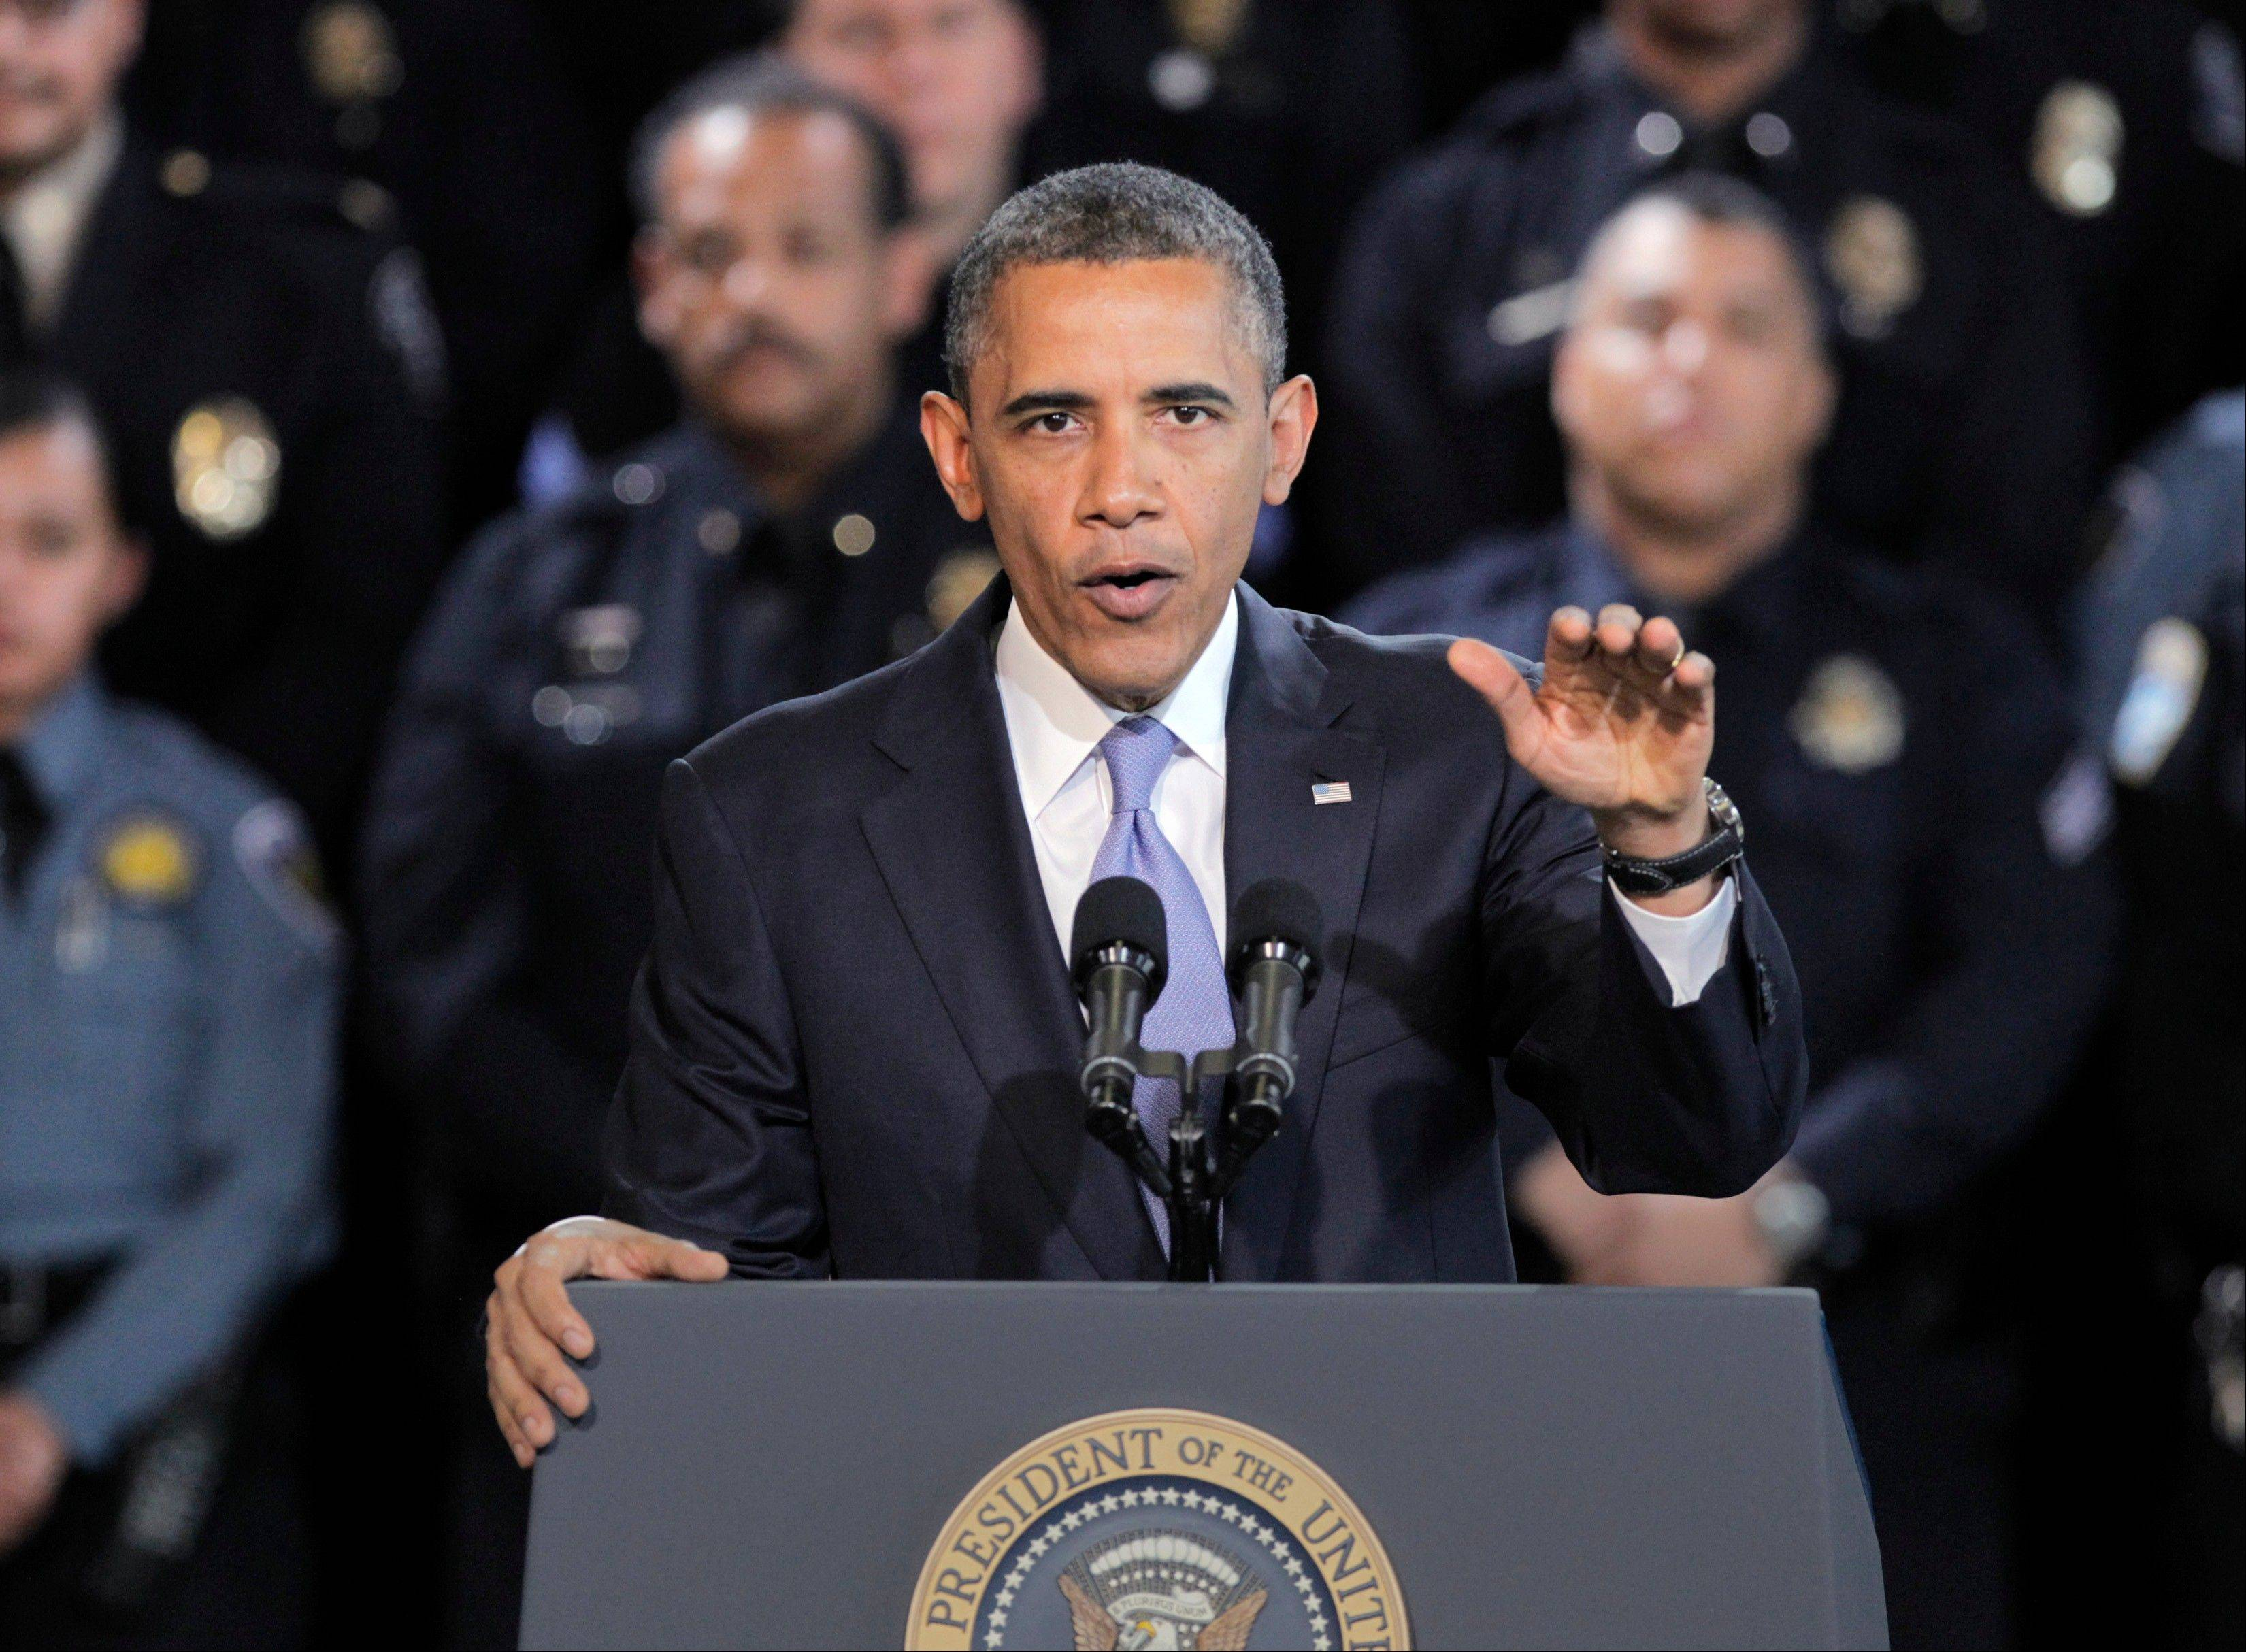 President Barack Obama speaks about gun control at the Denver Police Academy on Wednesday. He also met with local law enforcement officials and community leaders to discuss the state's new measures to reduce gun violence.